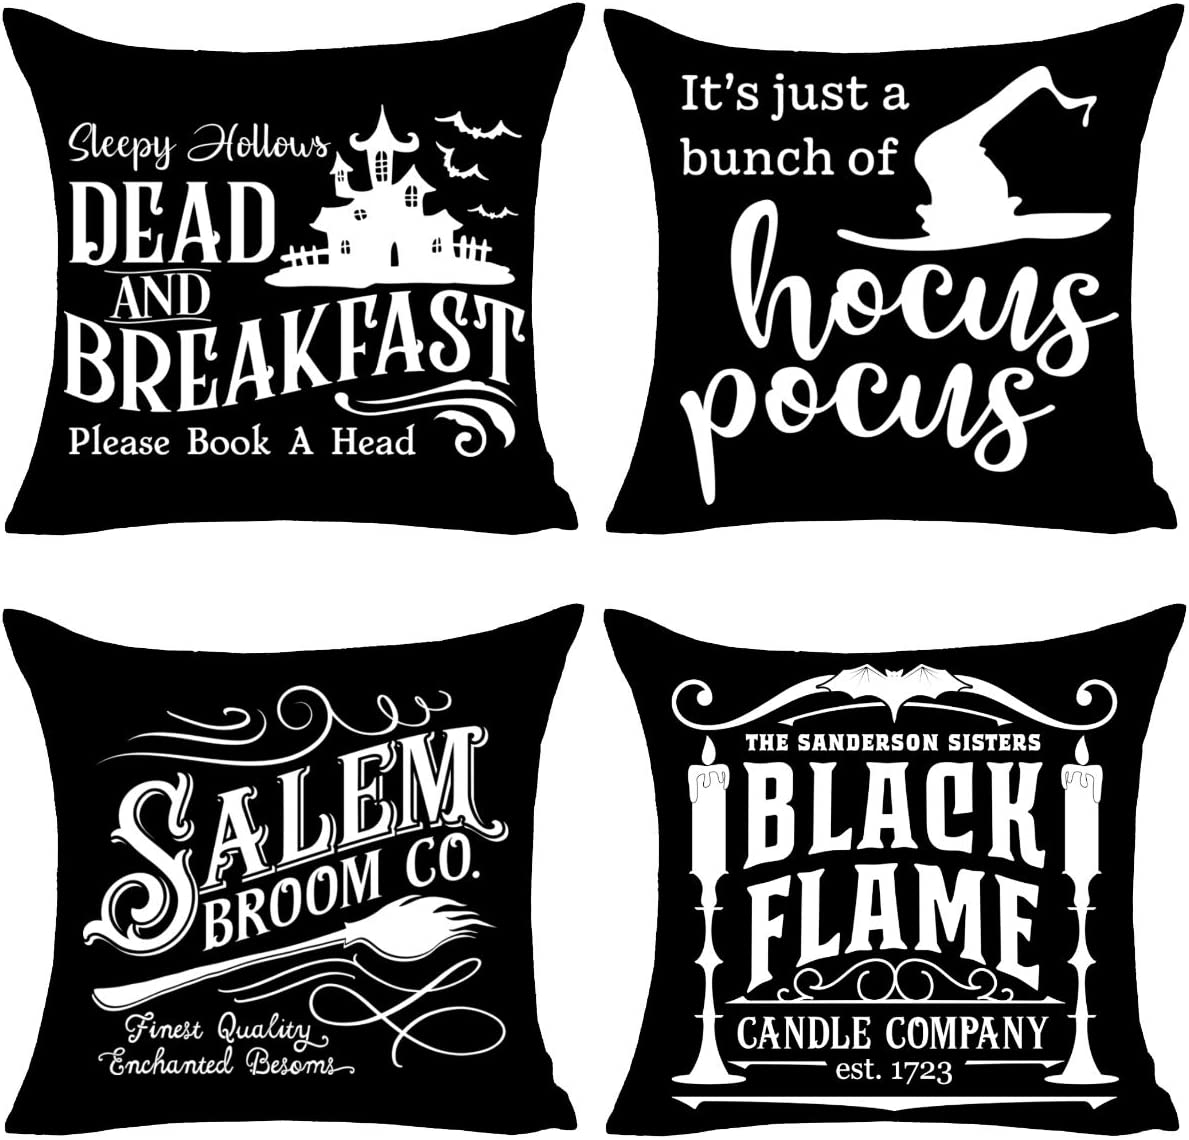 PSDWETS Fall Decor Black Throw Pillow Covers Set of 4 with Halloween Decorations Quotes Hocus Pocus Cotton Linen Home Pillow Covers 18 x 18 Inches for Rustic Modern Farmhouse